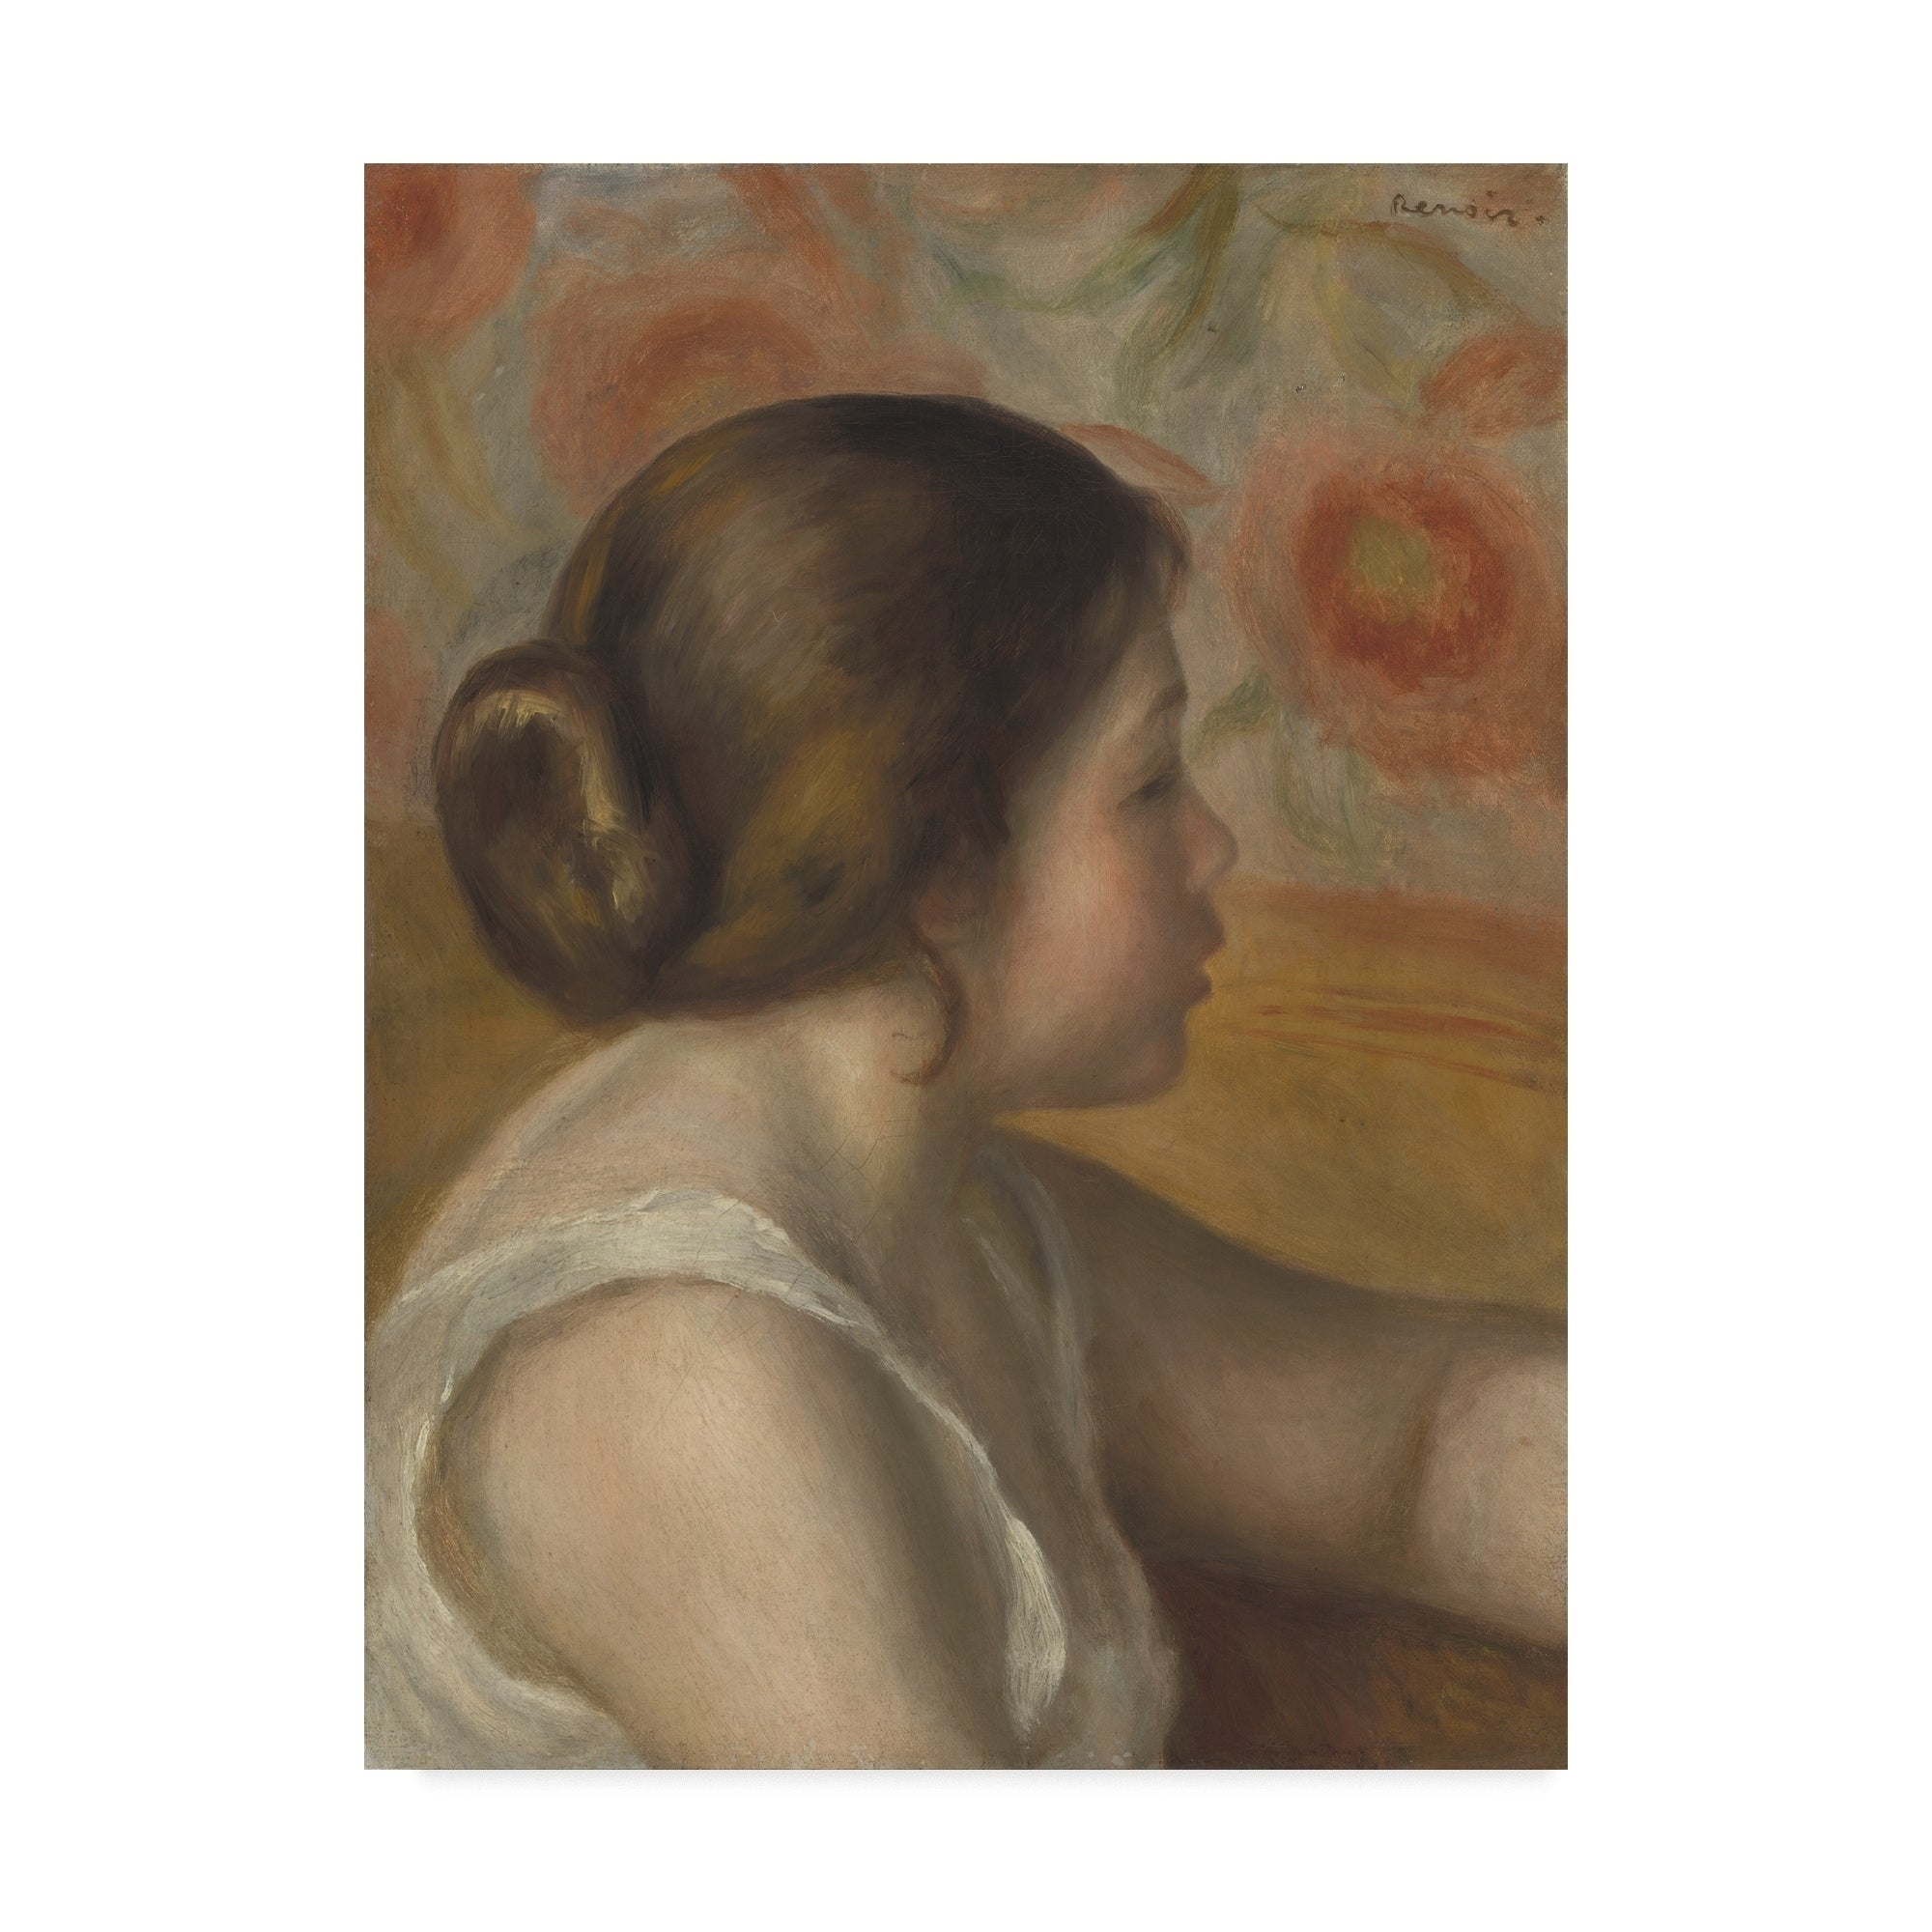 After the bath by Pierre-Auguste Renoir Giclee Fine ArtPrint Repro on Canvas